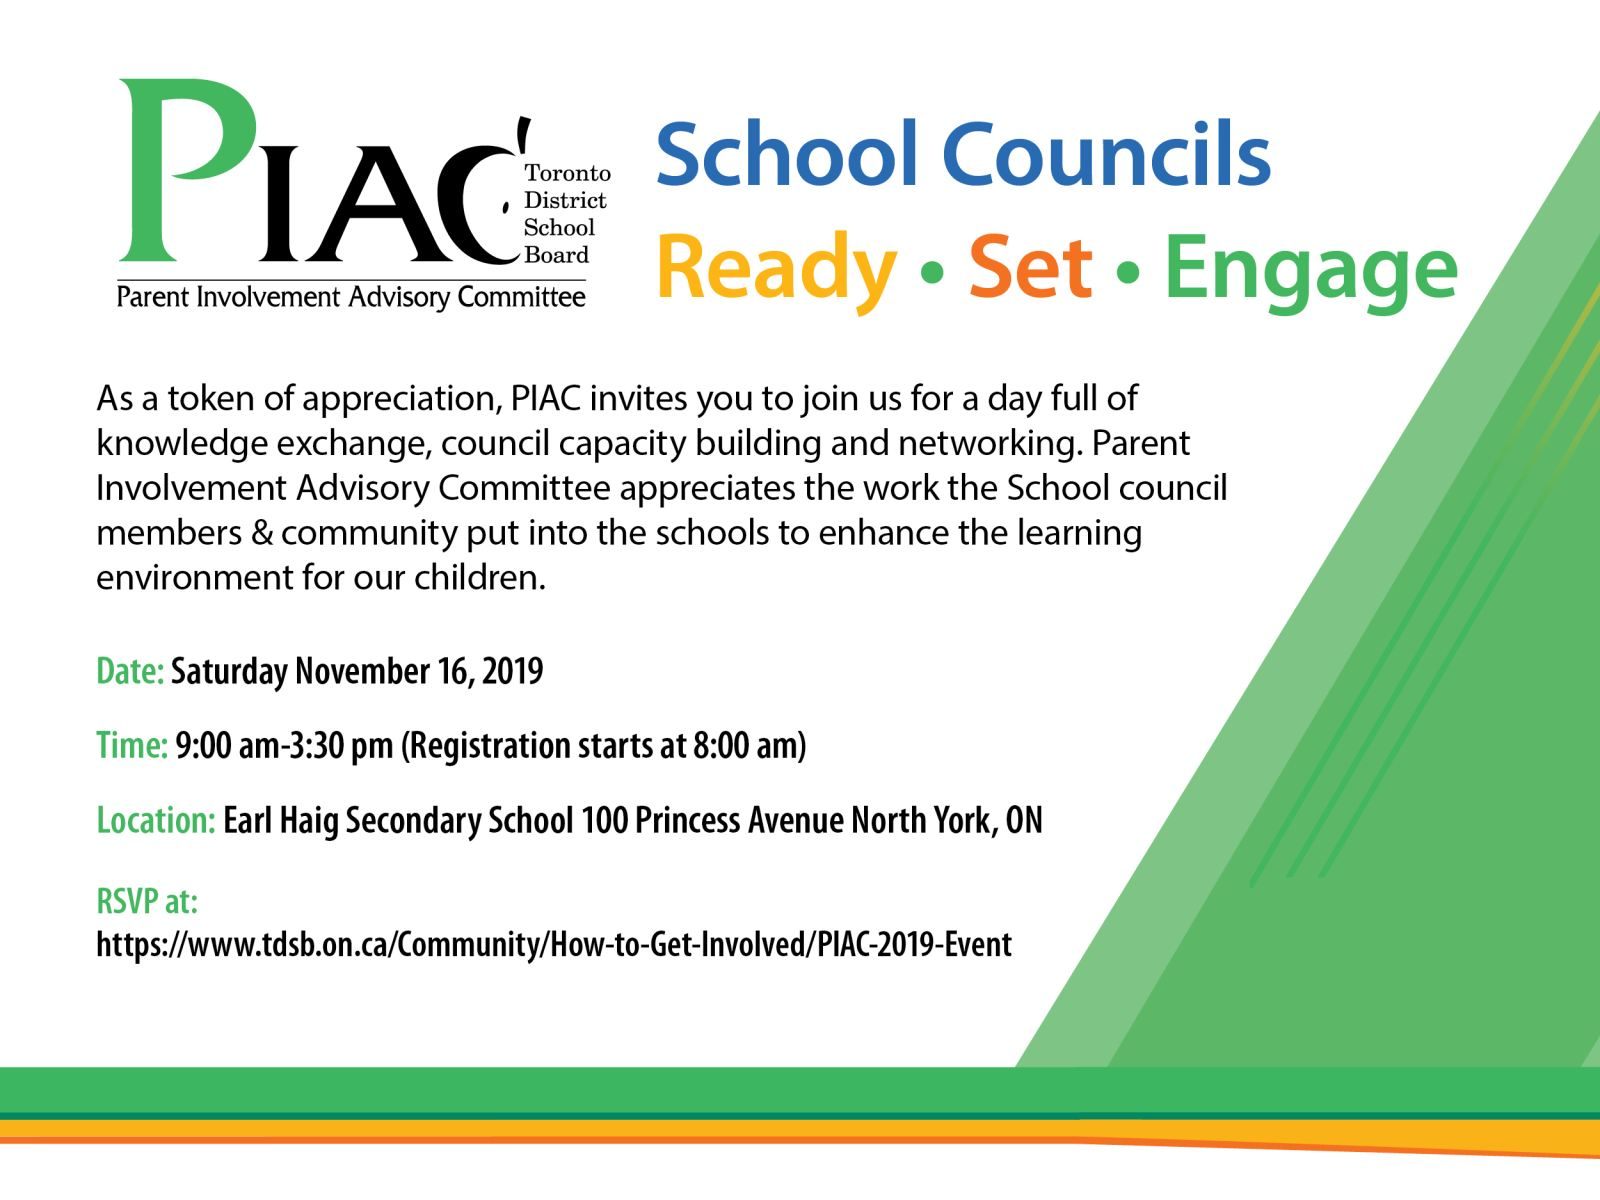 Event poster. As a token of appreciation, PIAC invites you to join us for a day full of knowledge exchange, council capacity building and networking. Parent Involvement Advisory Committee appreciates the work the School council members & community put into the schools to enhance the learning environment for our children